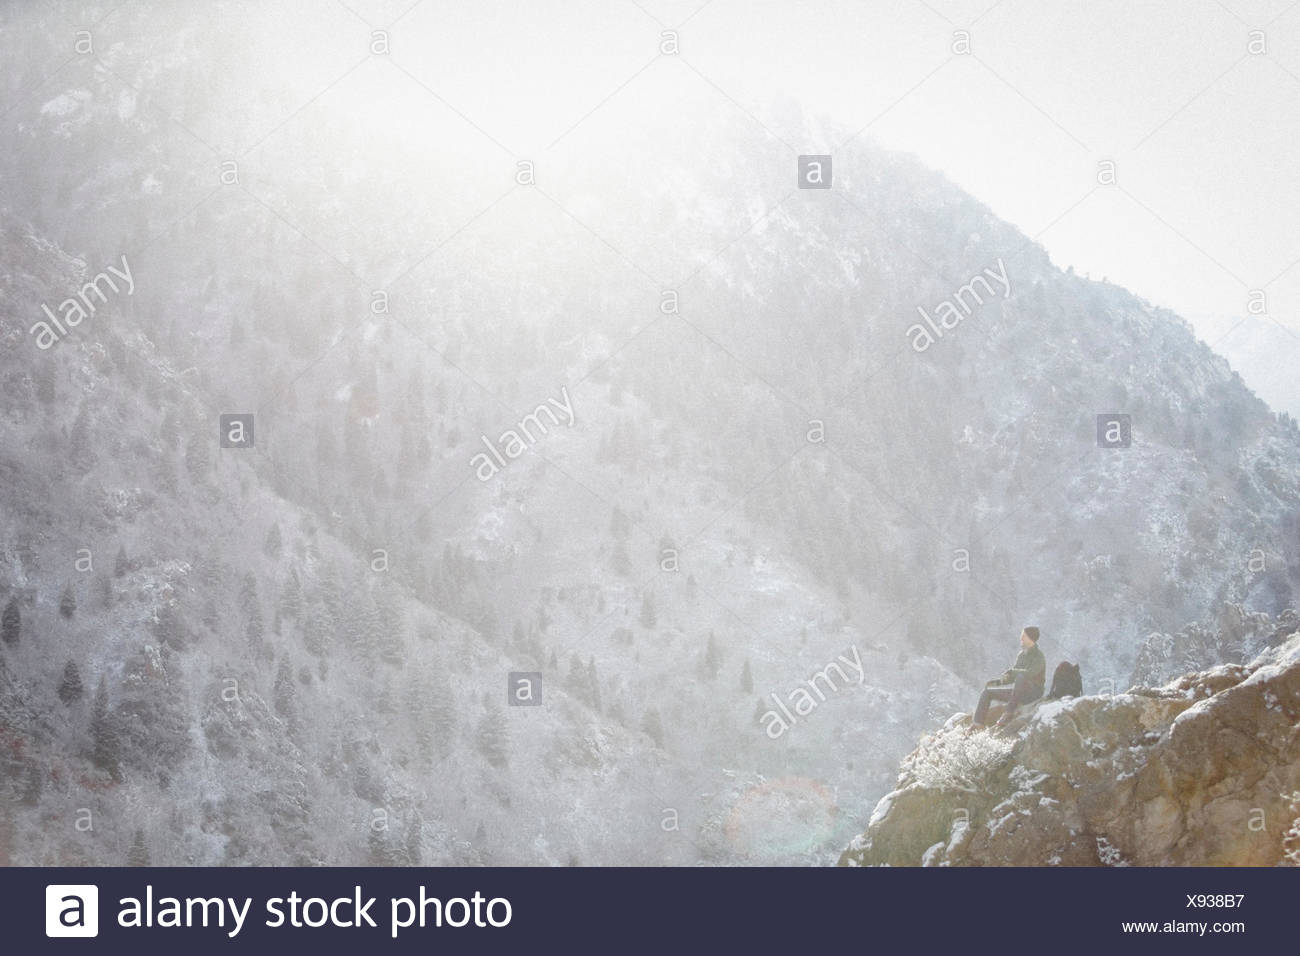 A man, a hiker in the mountains, taking a rest on a rock outcrop above a valley. - Stock Image